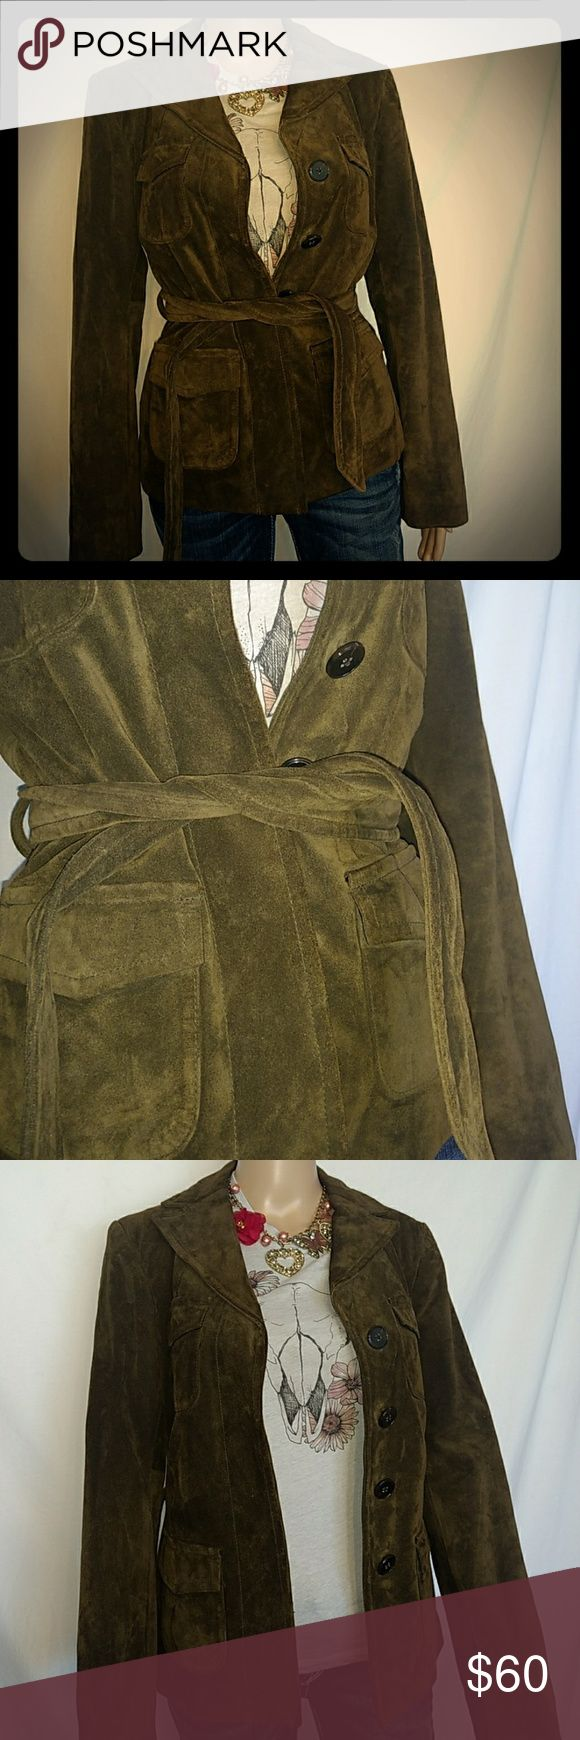 NWOT Ann Taylor Green Suede Leather Military Green suede leather military jacket never worn. Great for layering or over a black little dress. Ann Taylor Jackets & Coats